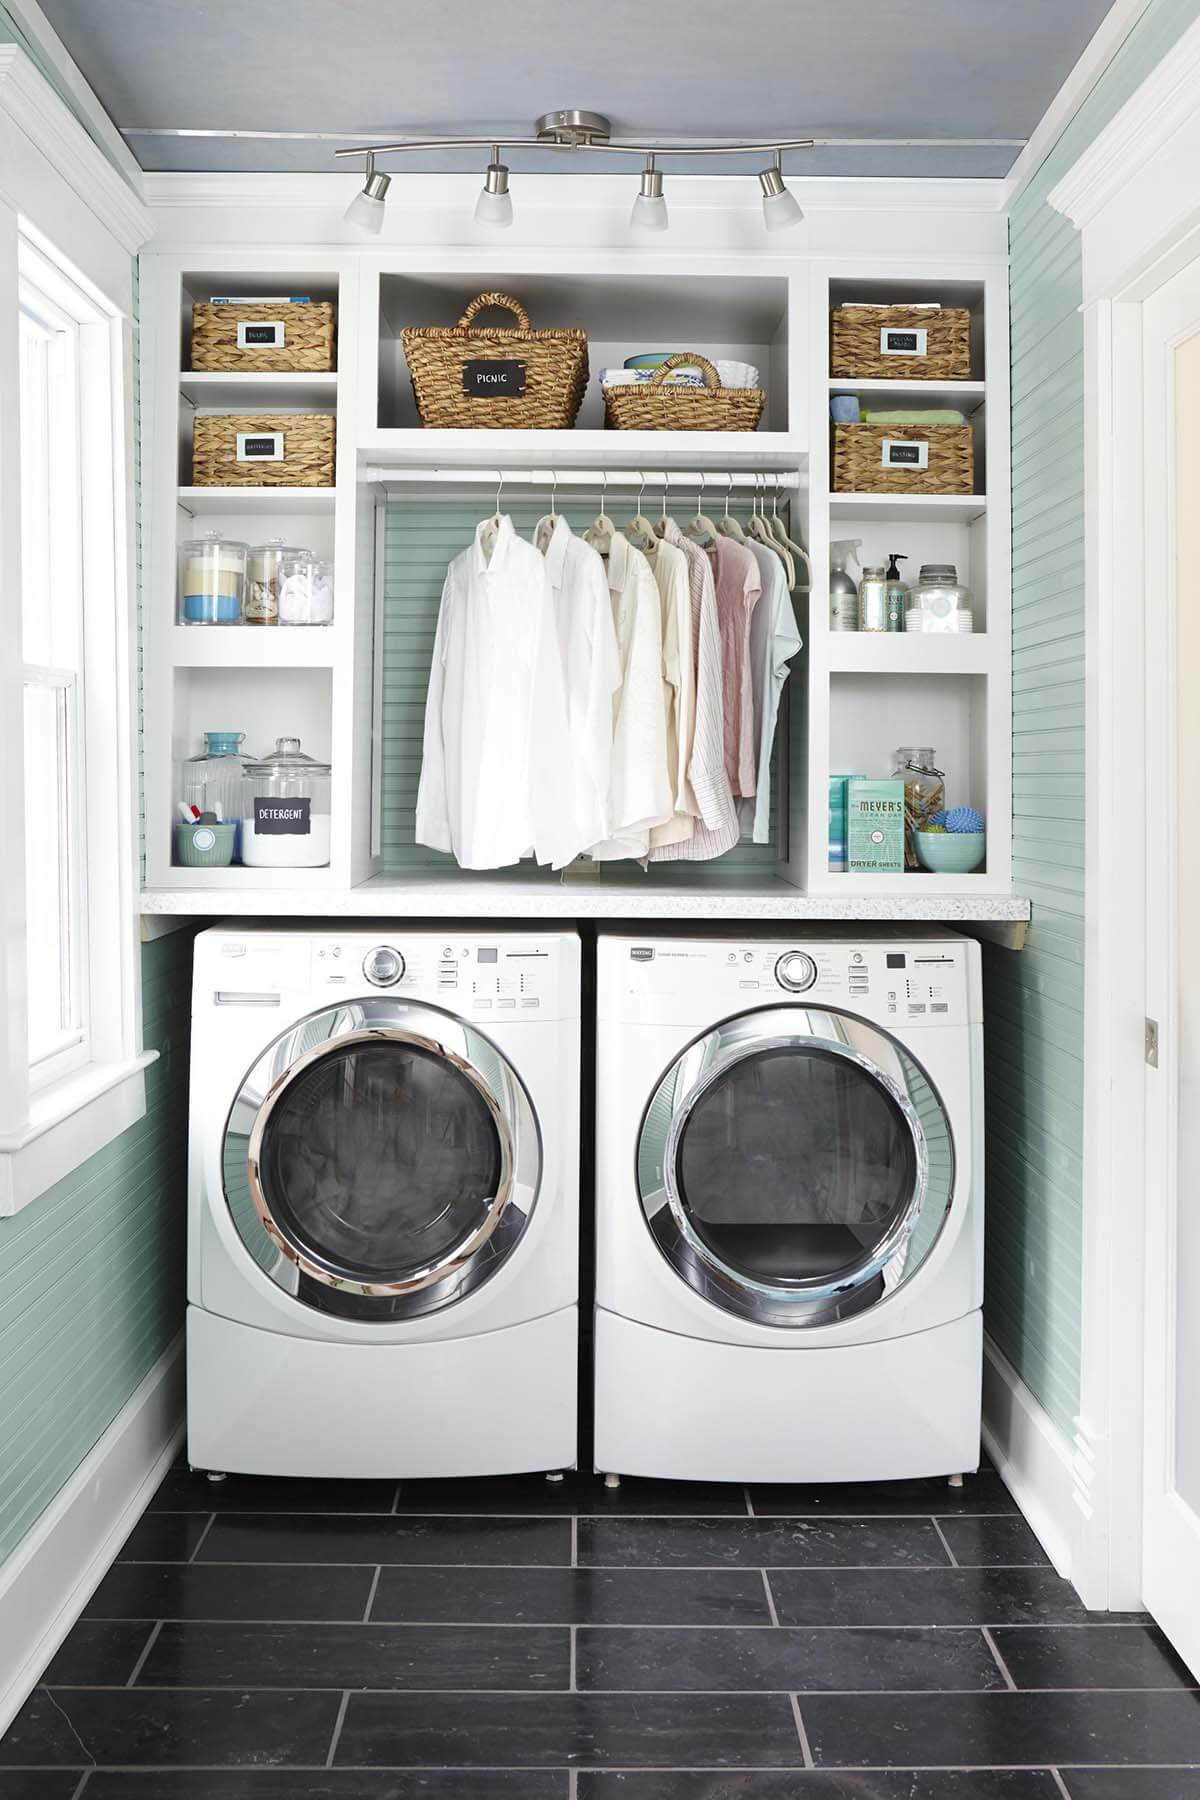 Small Laundry Room Ideas for Making Laundry Easier